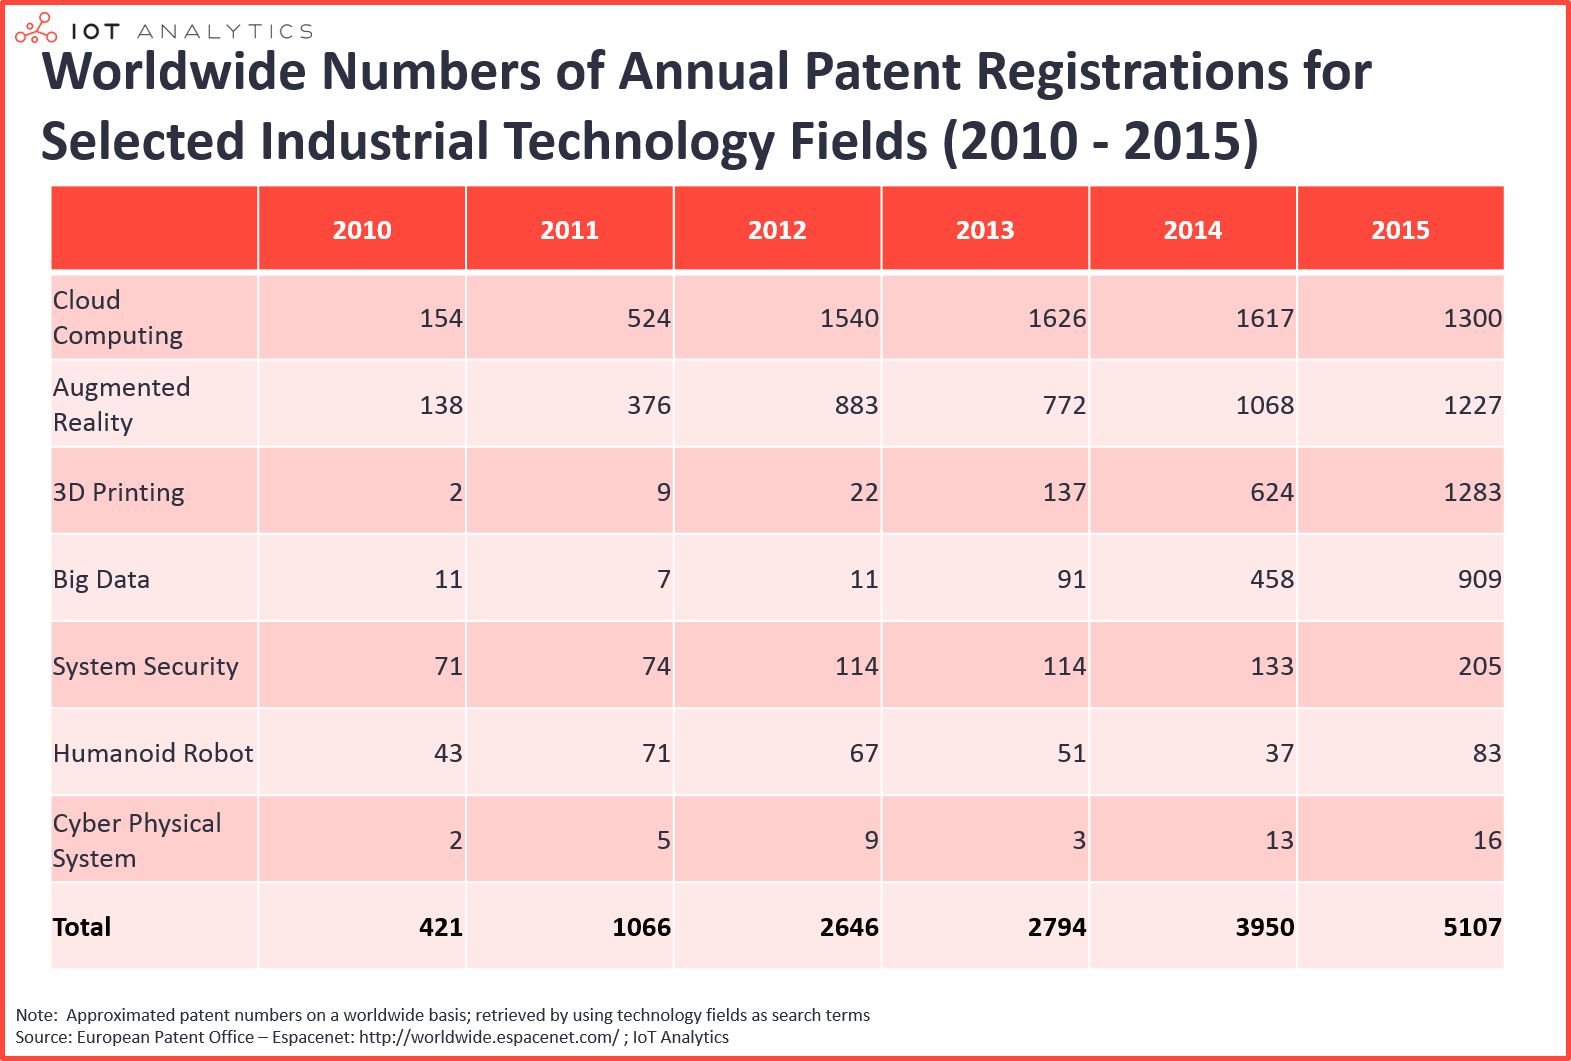 Industrial Technology Trends Annual Patent Registrations